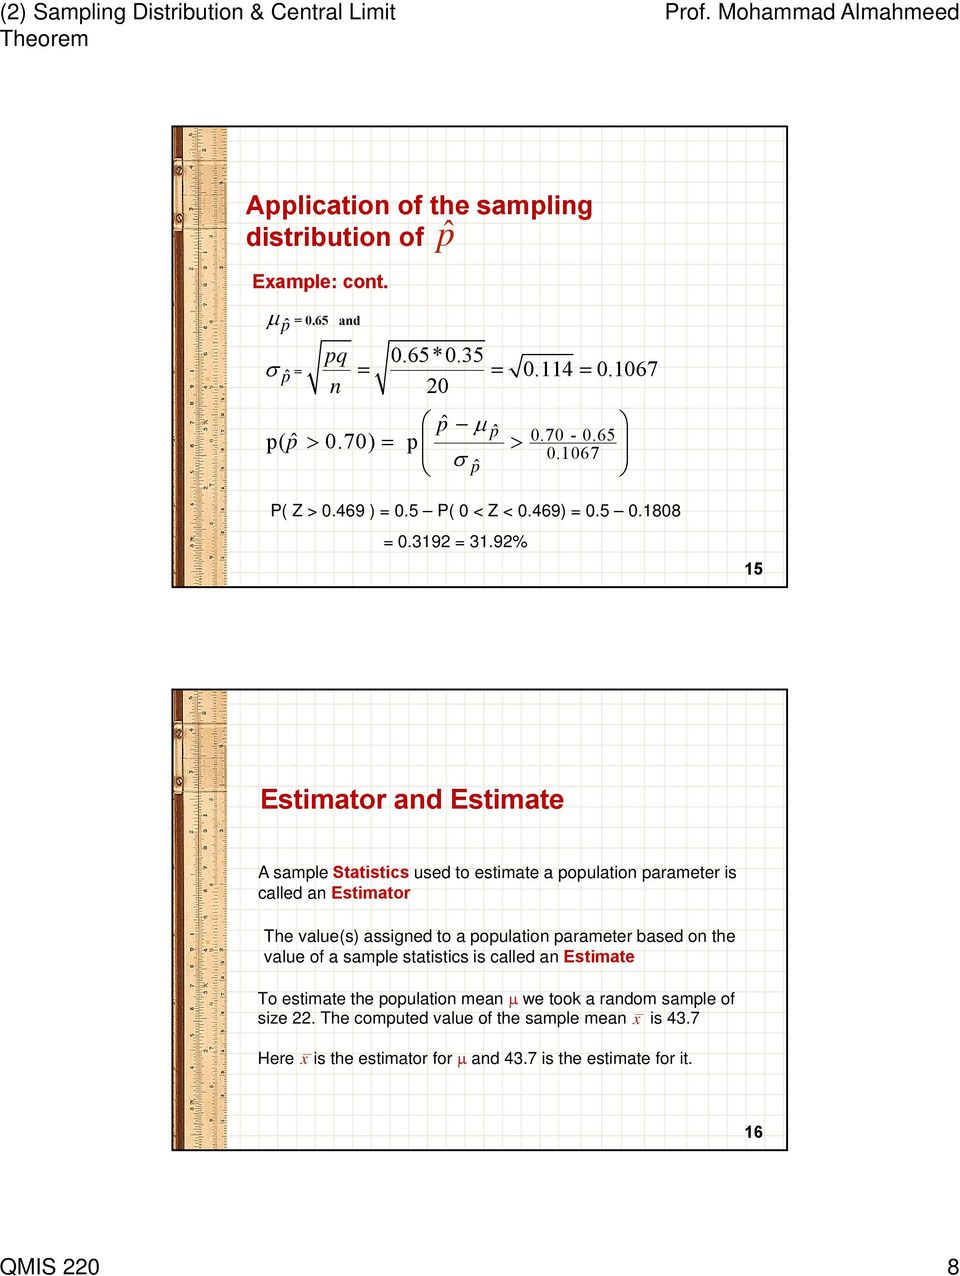 9% 15 Estimator ad Estimate A sample Statistics used to estimate a populatio parameter is called a Estimator The value(s) assiged to a populatio parameter